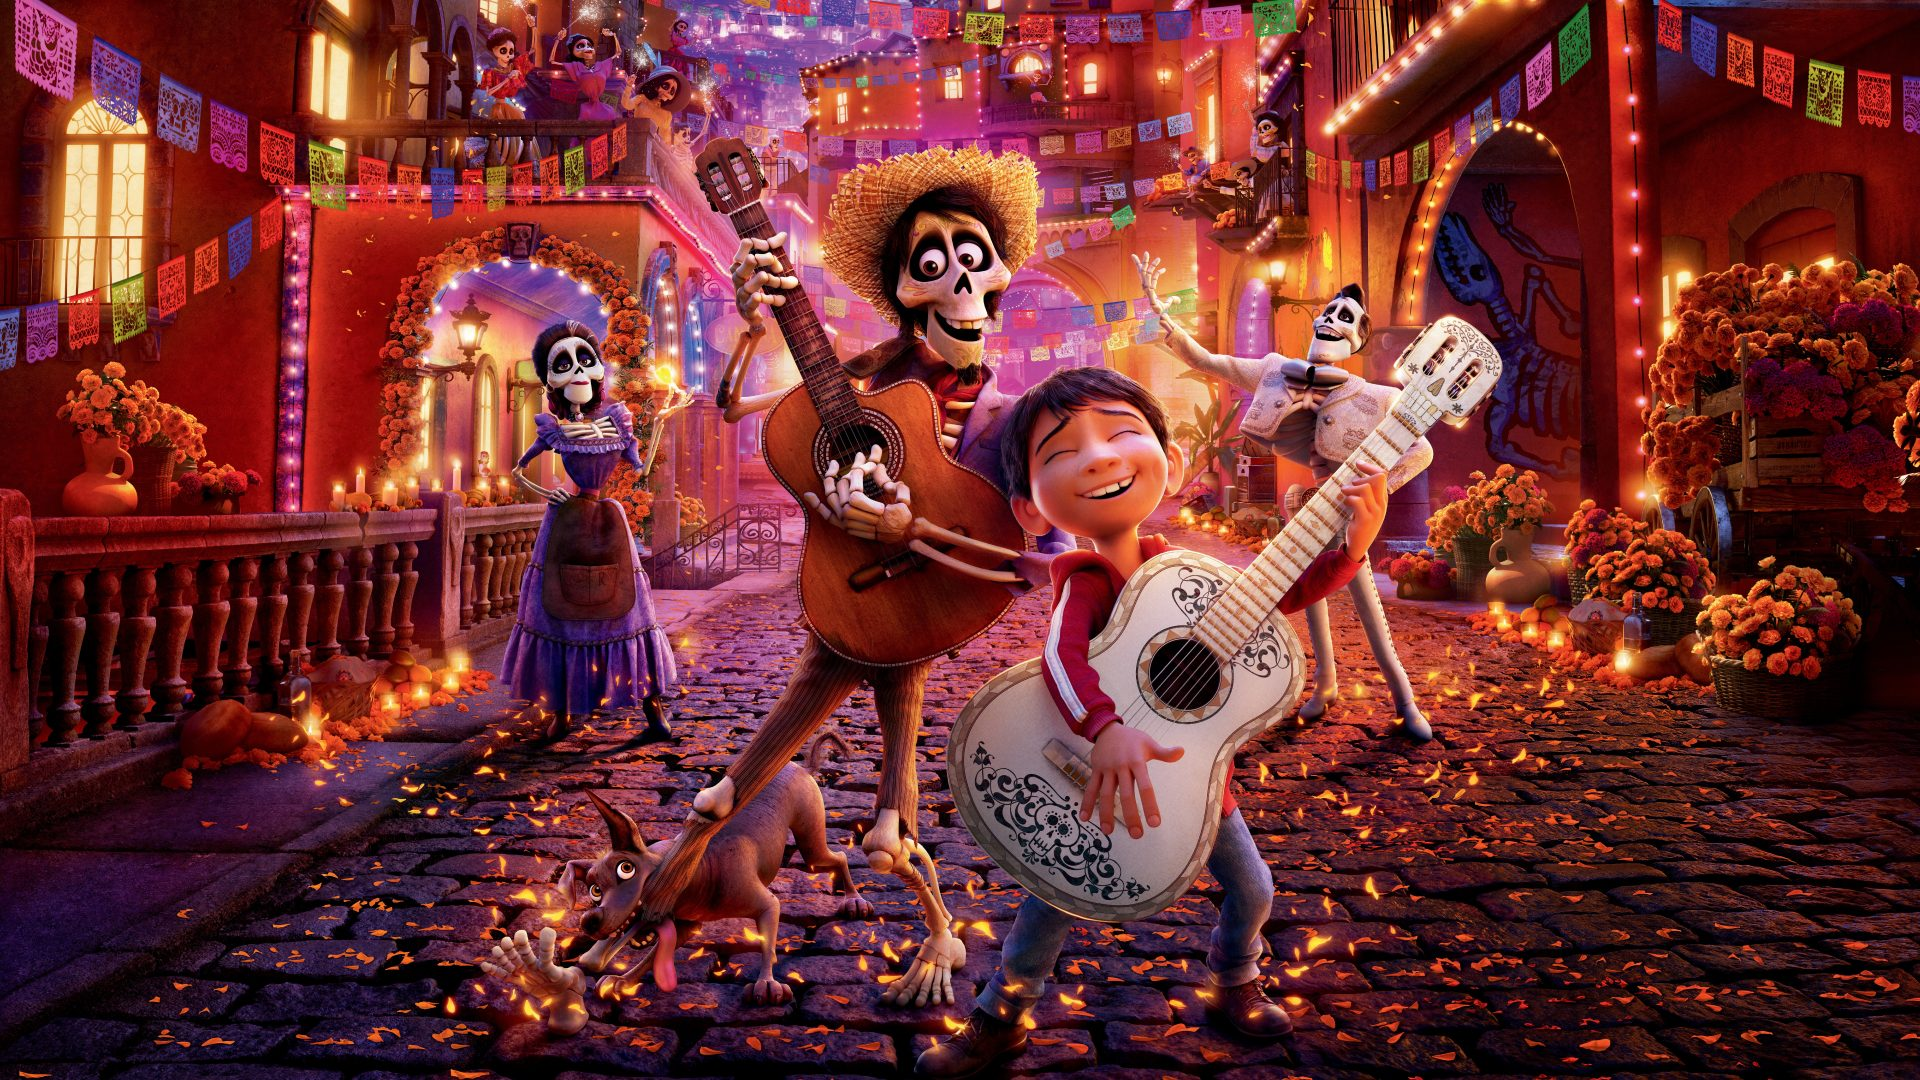 Coco Pixar Animation - Download hd wallpapers